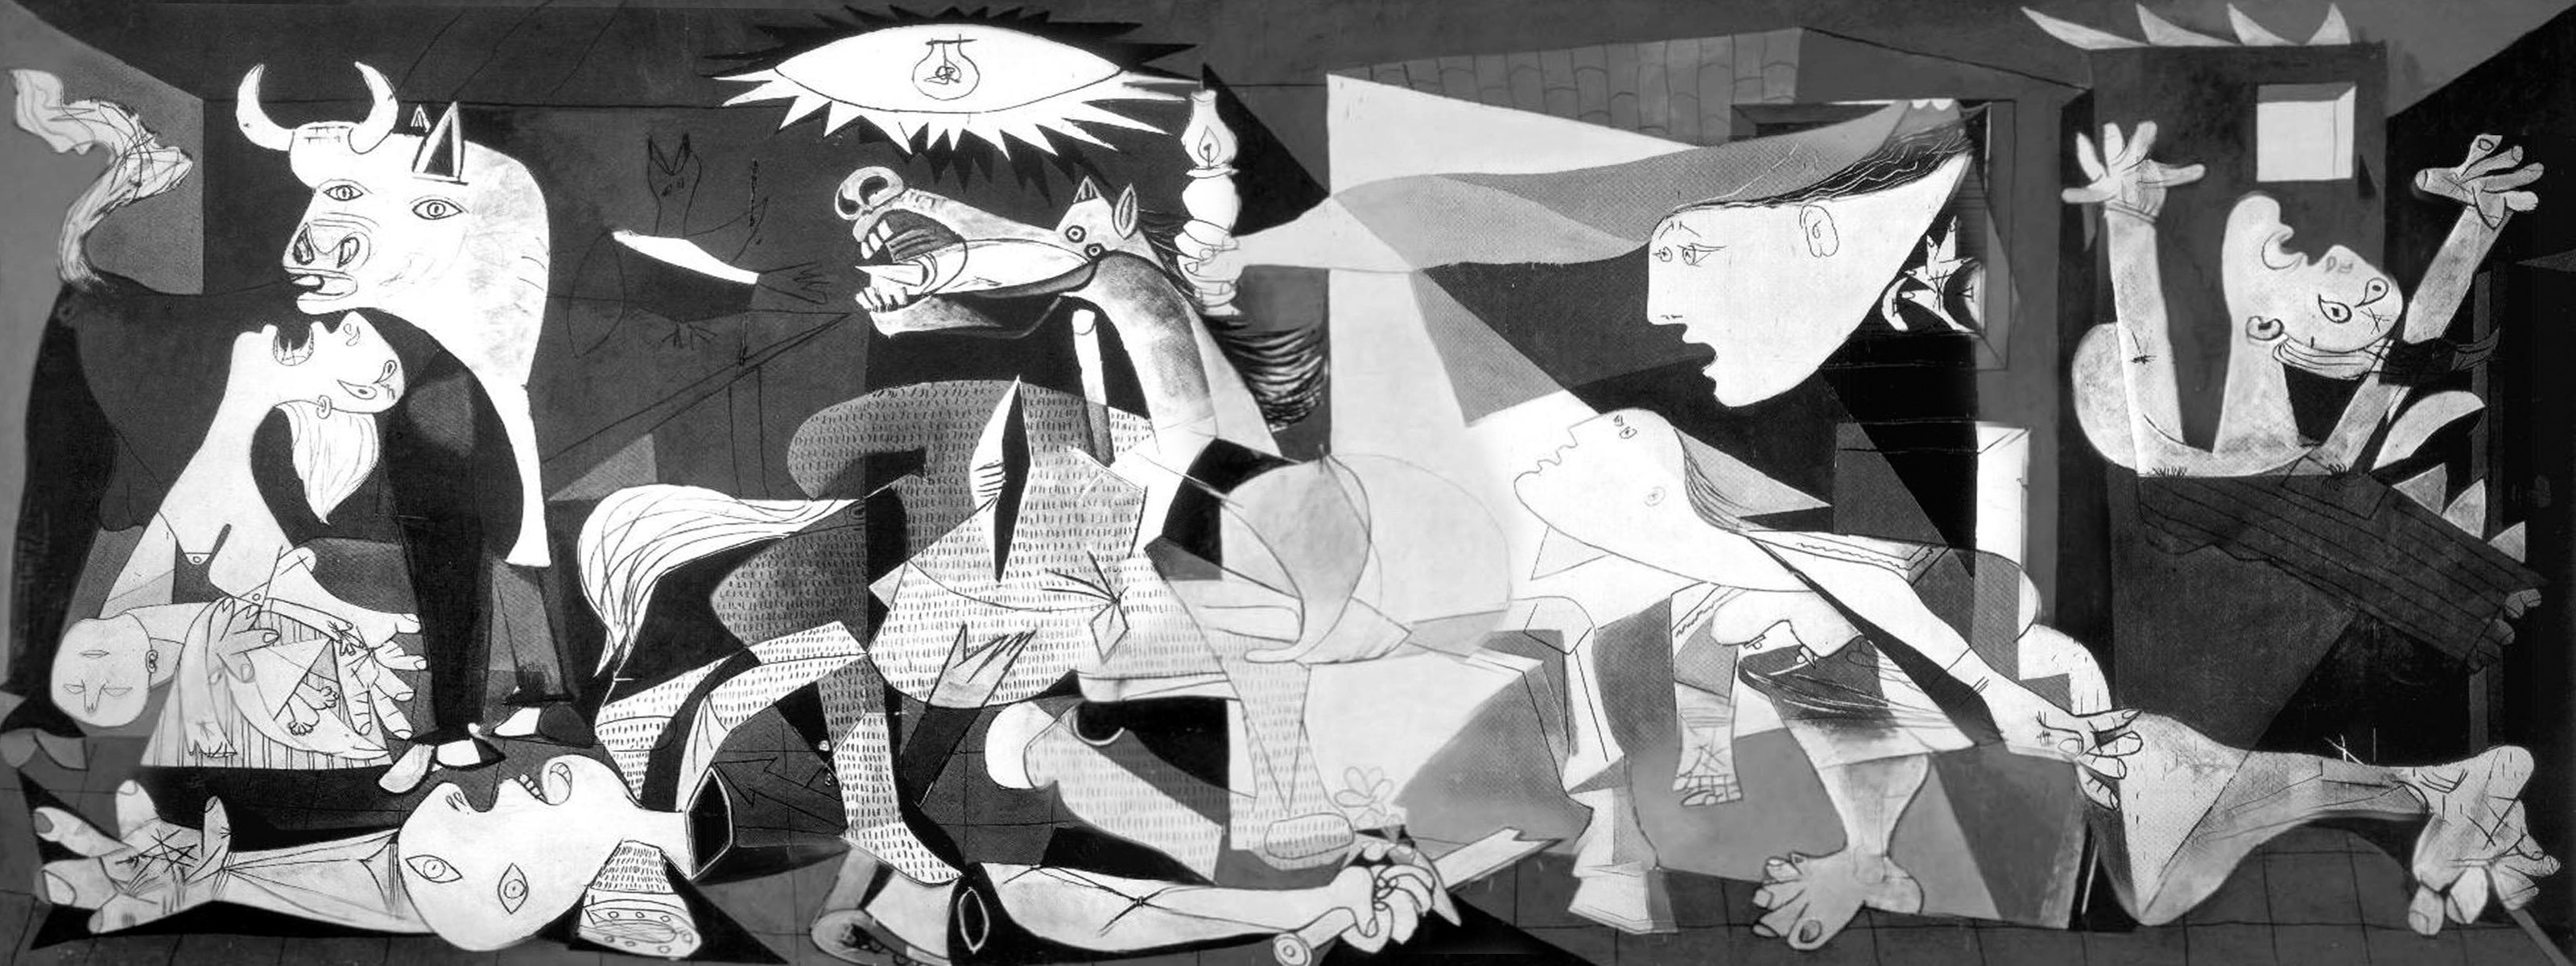 One of Picasso's best known works, Guernica is regarded by many art critics as one of the most moving and powerful anti-war